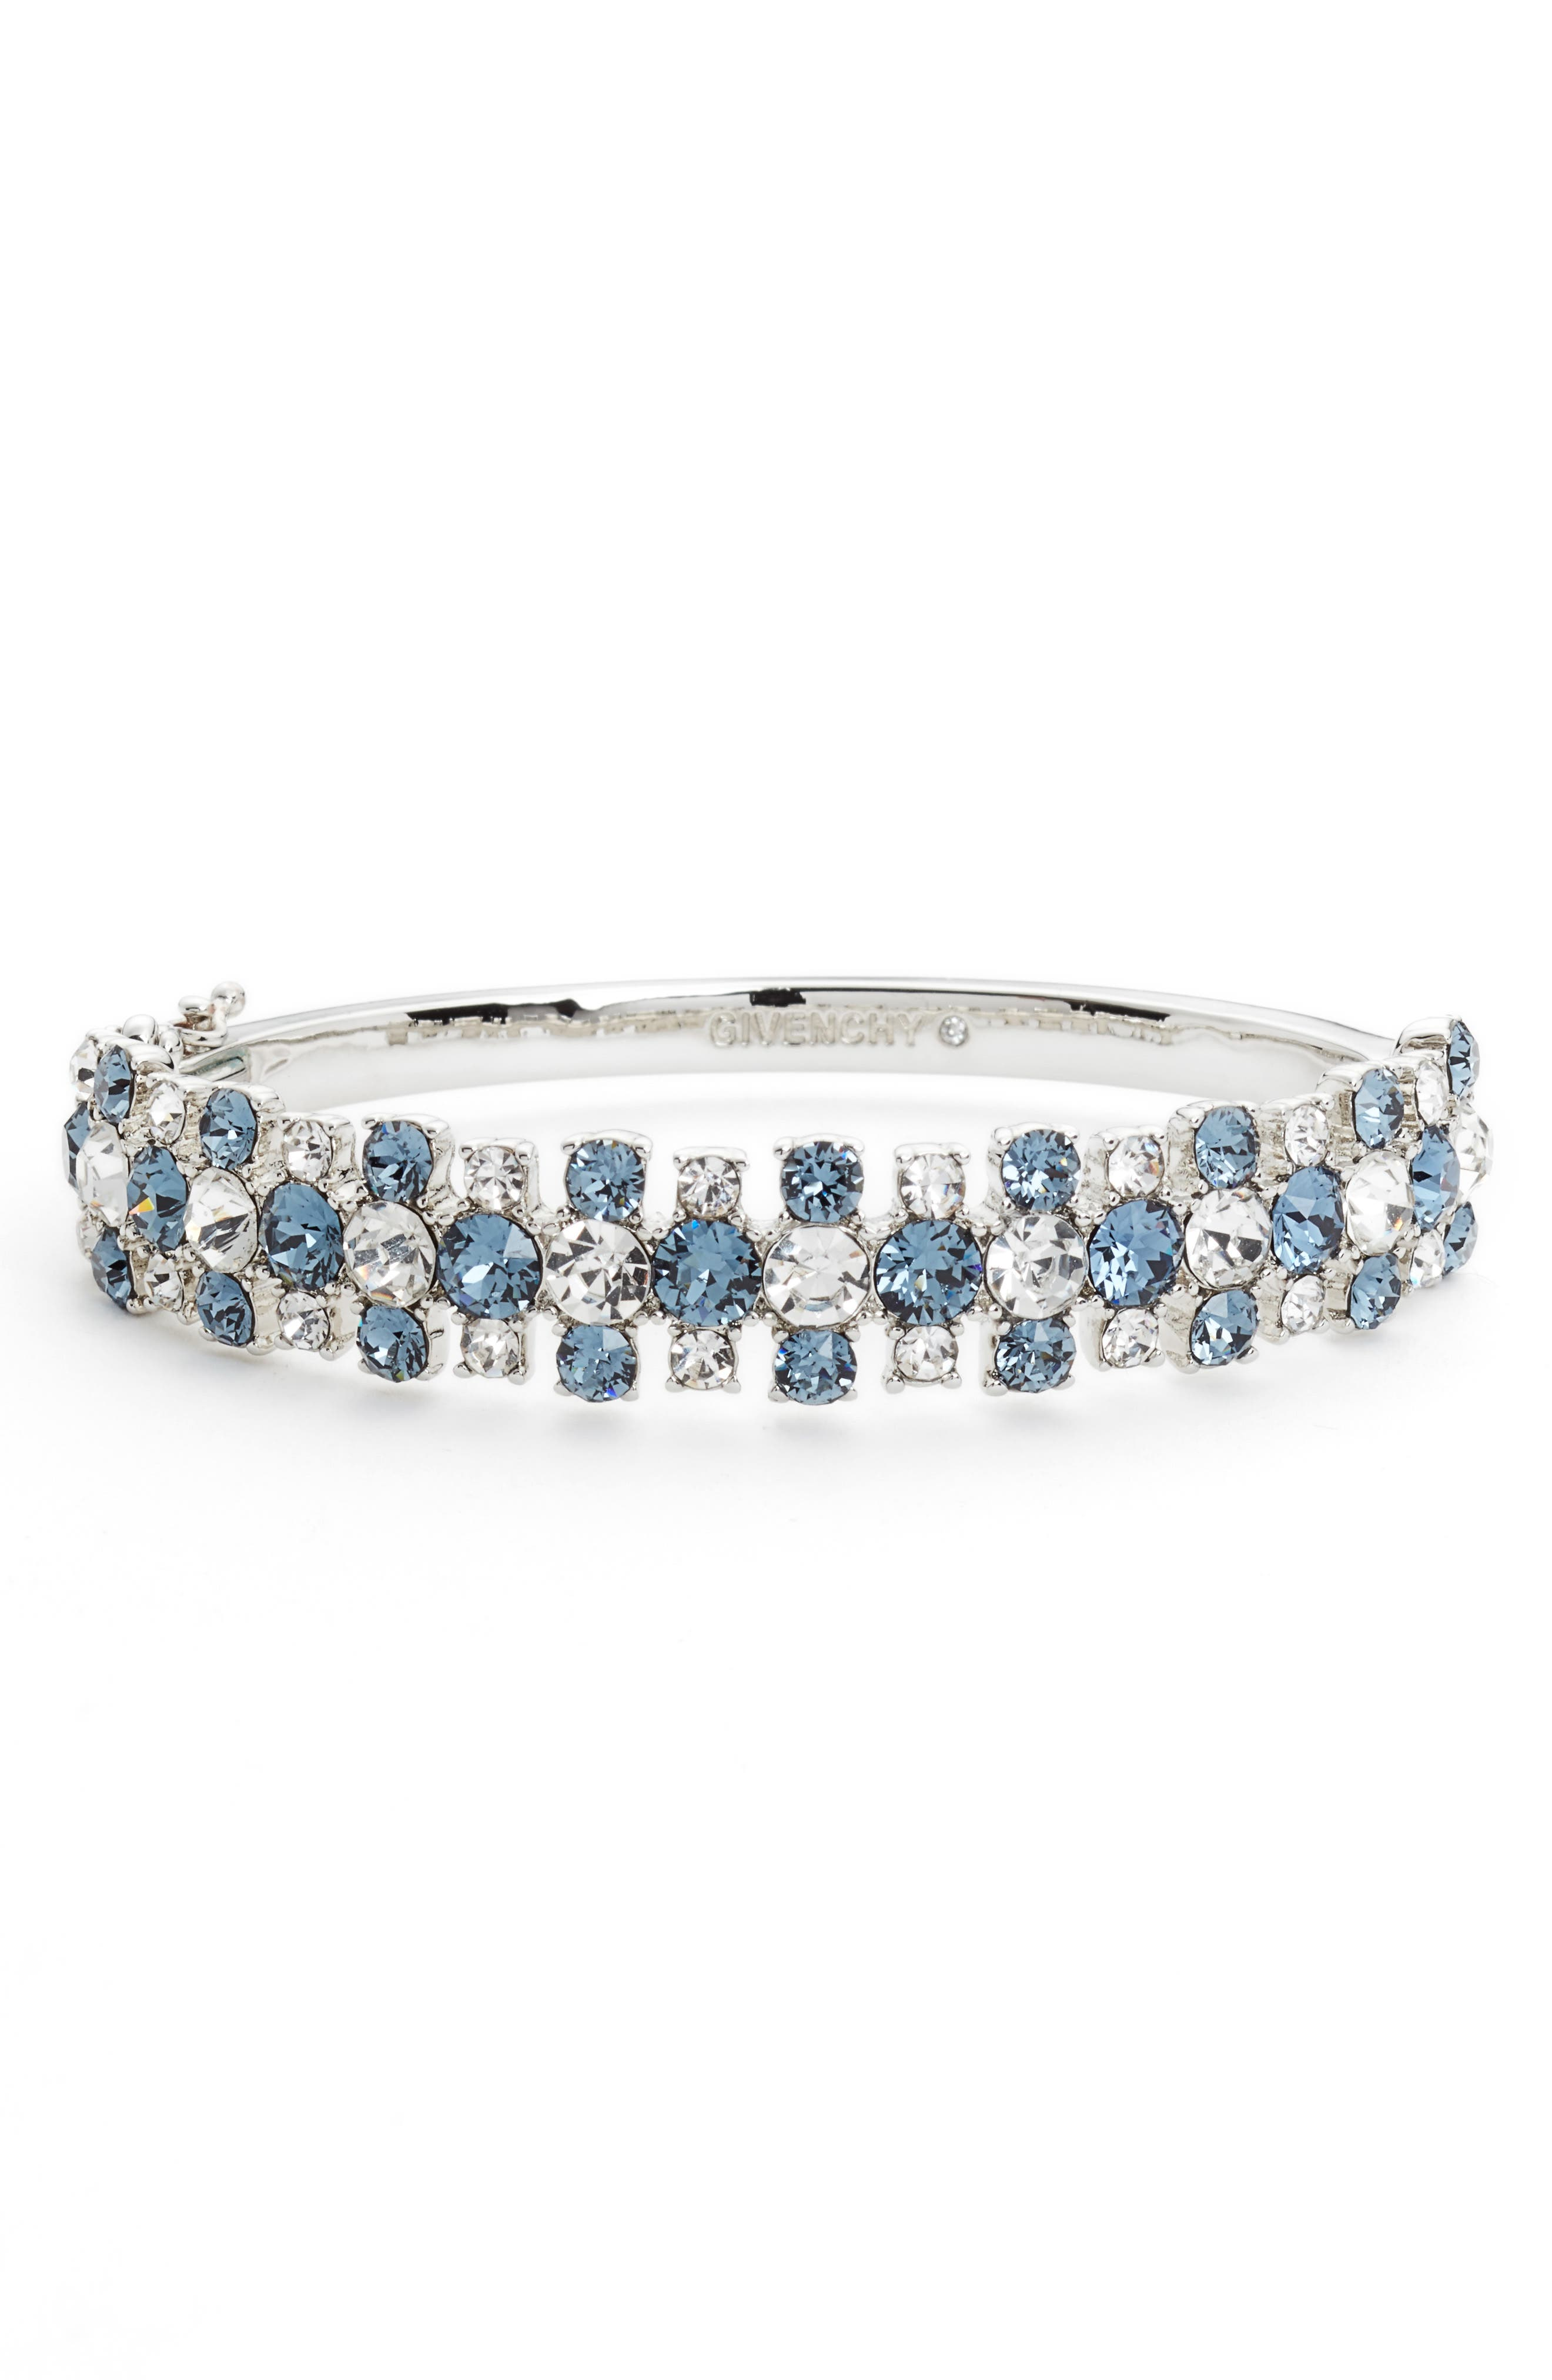 Crystal Bangle Bracelet,                         Main,                         color, 040